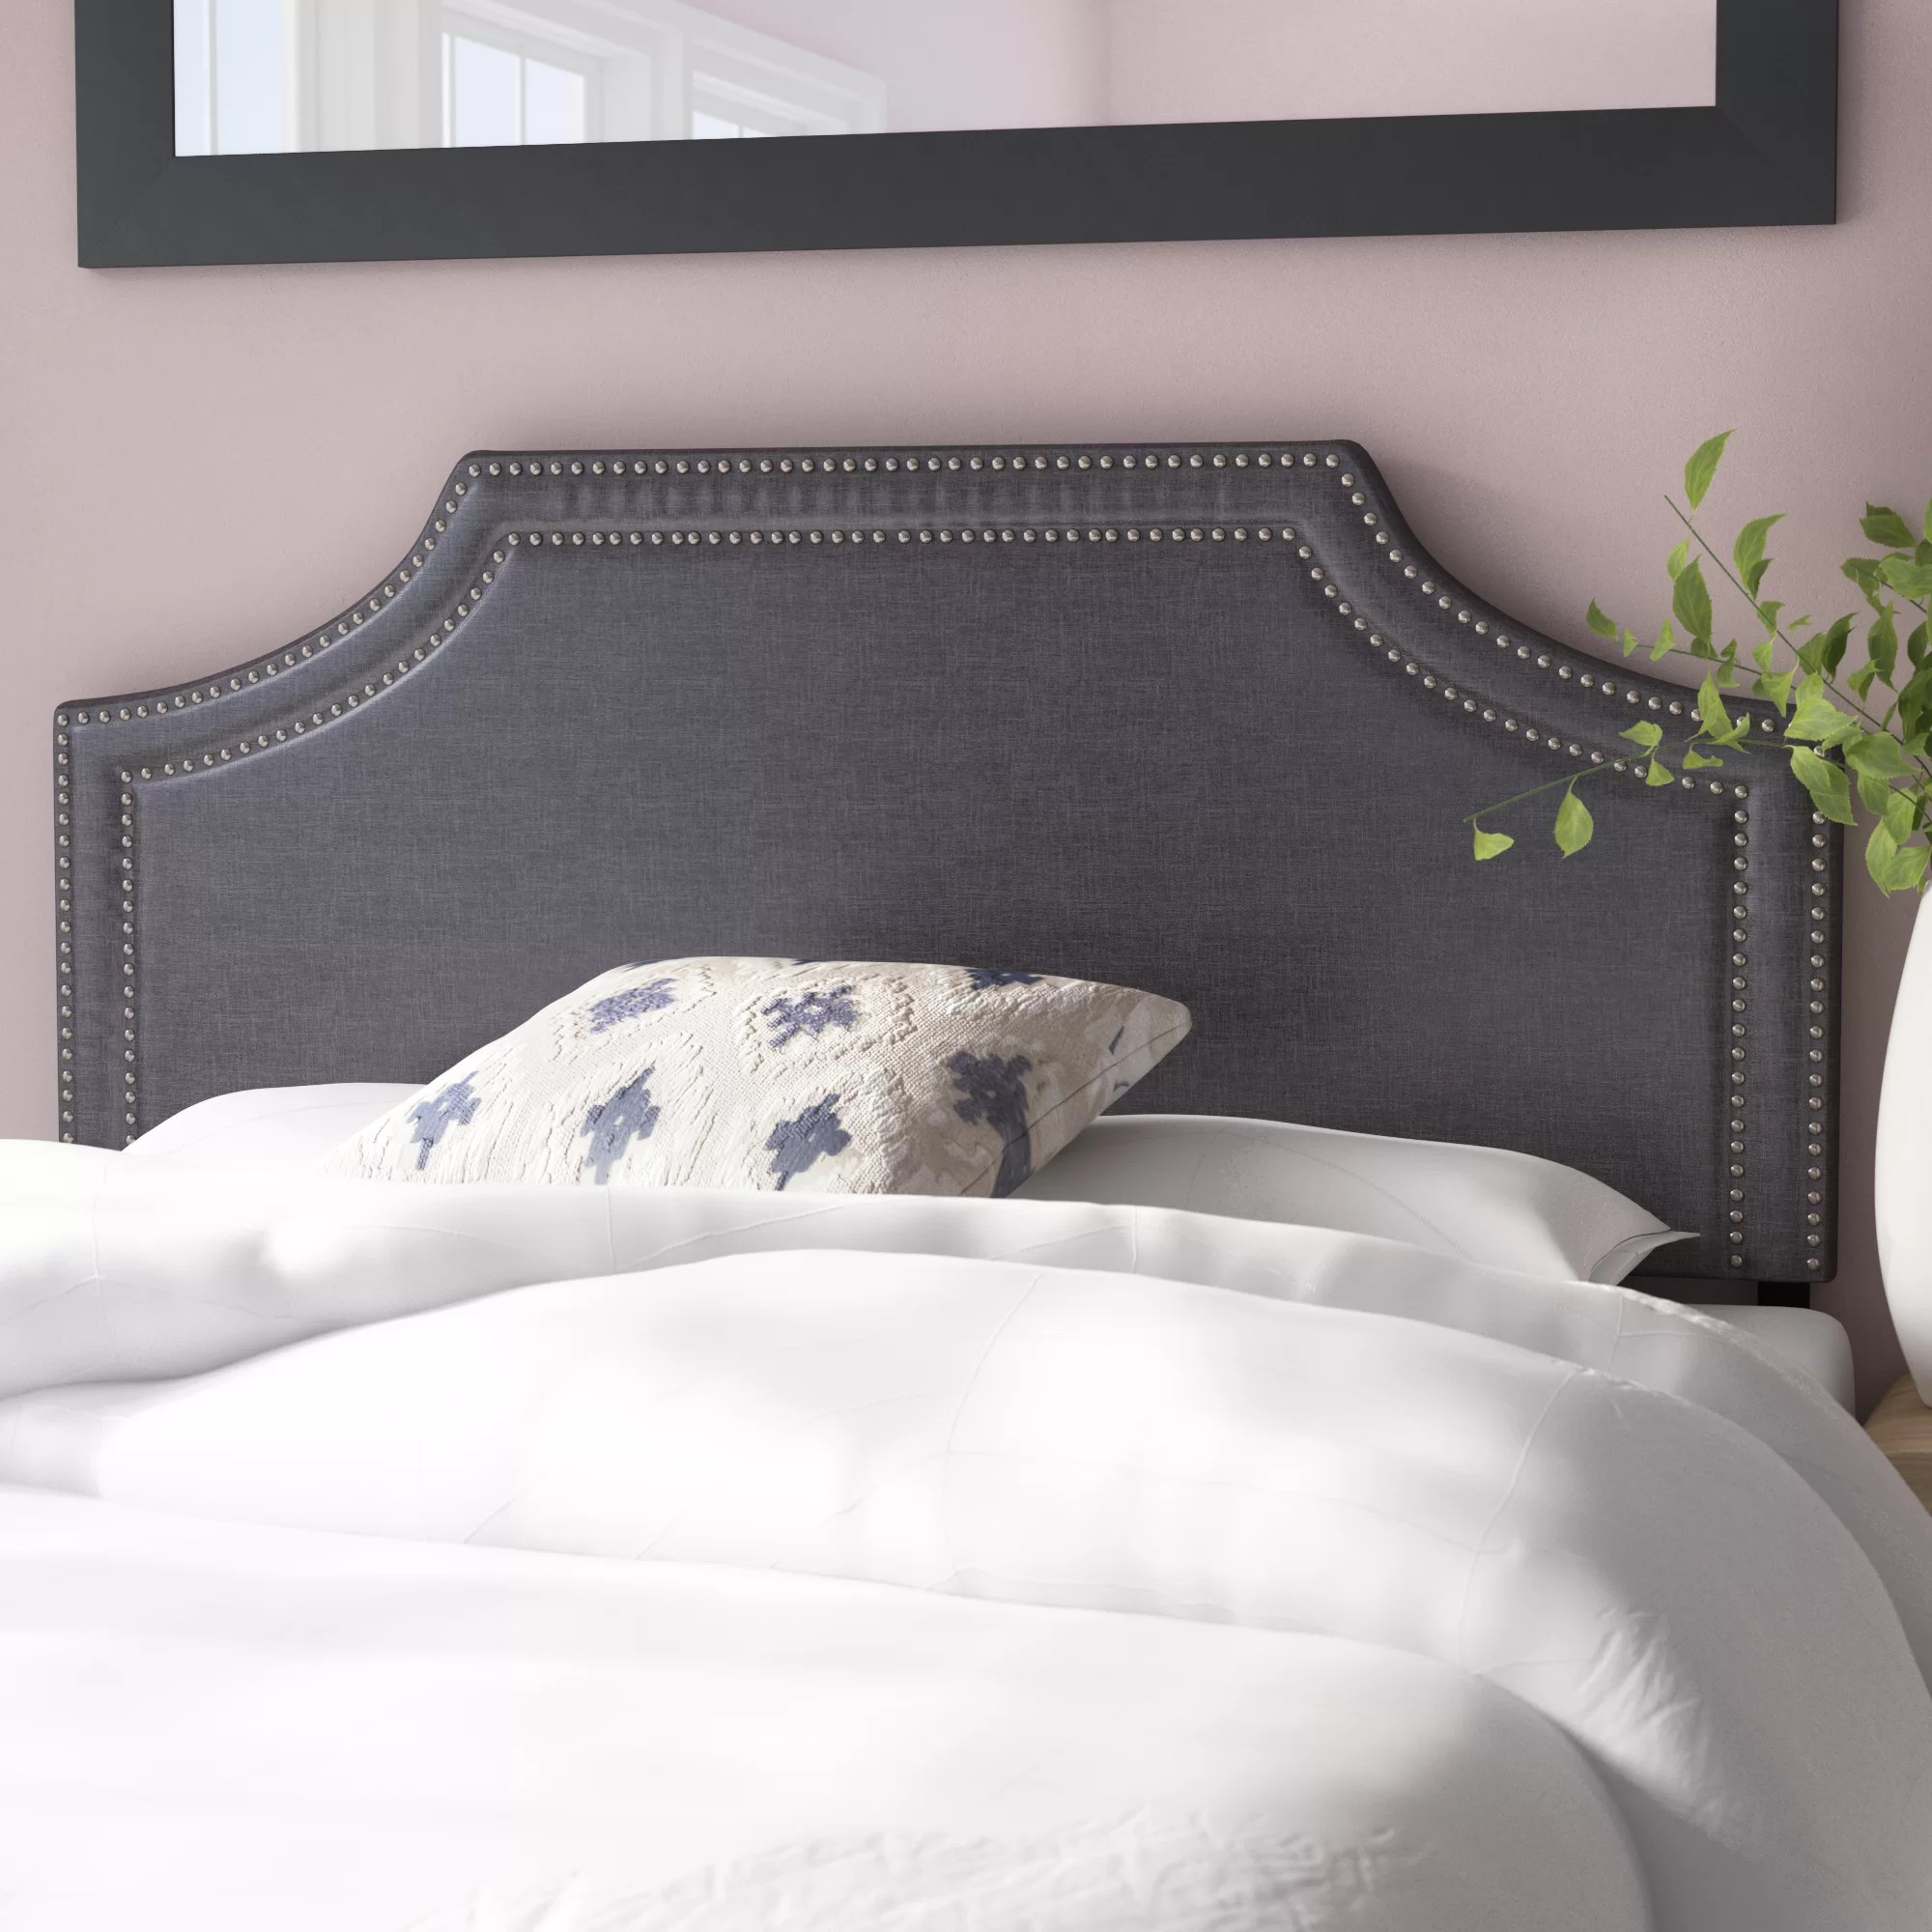 Bed Headboard Albee Upholstered Panel Headboard